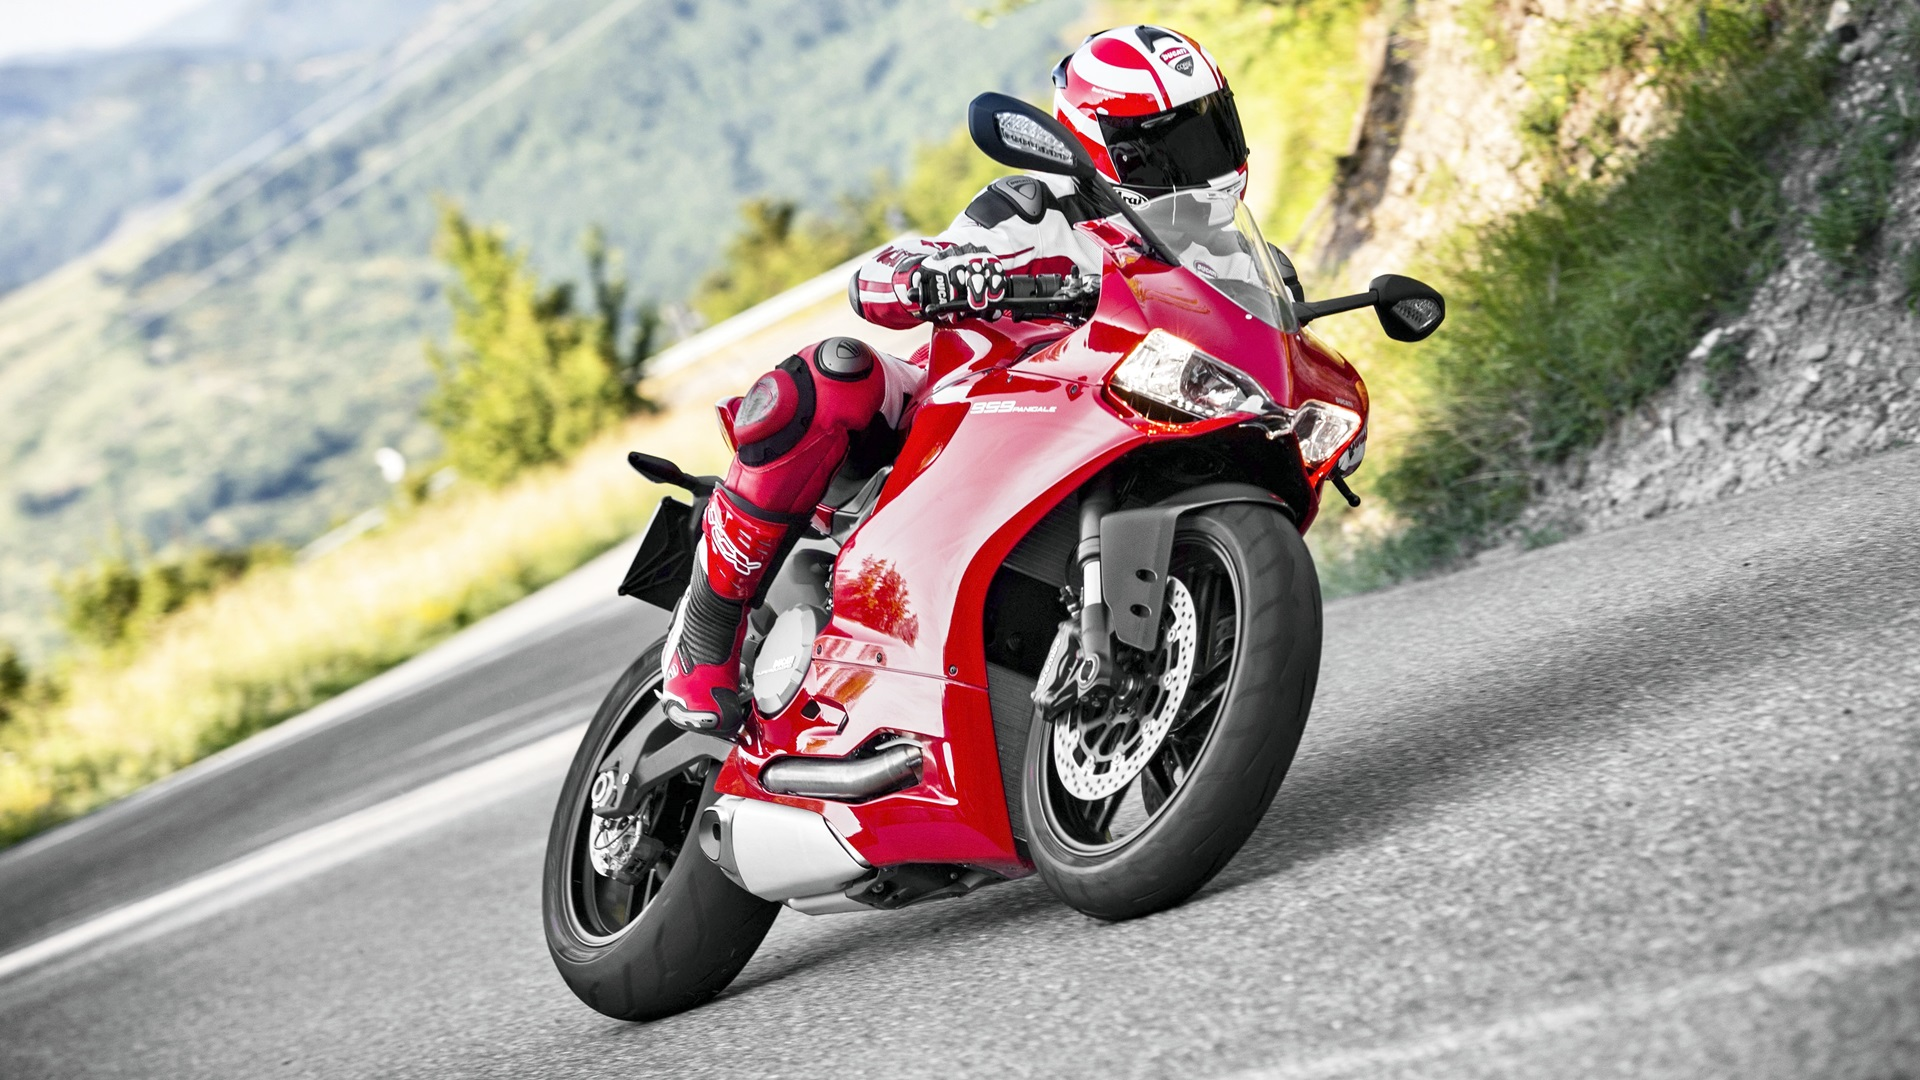 Ducati 959 Panigale launched in India